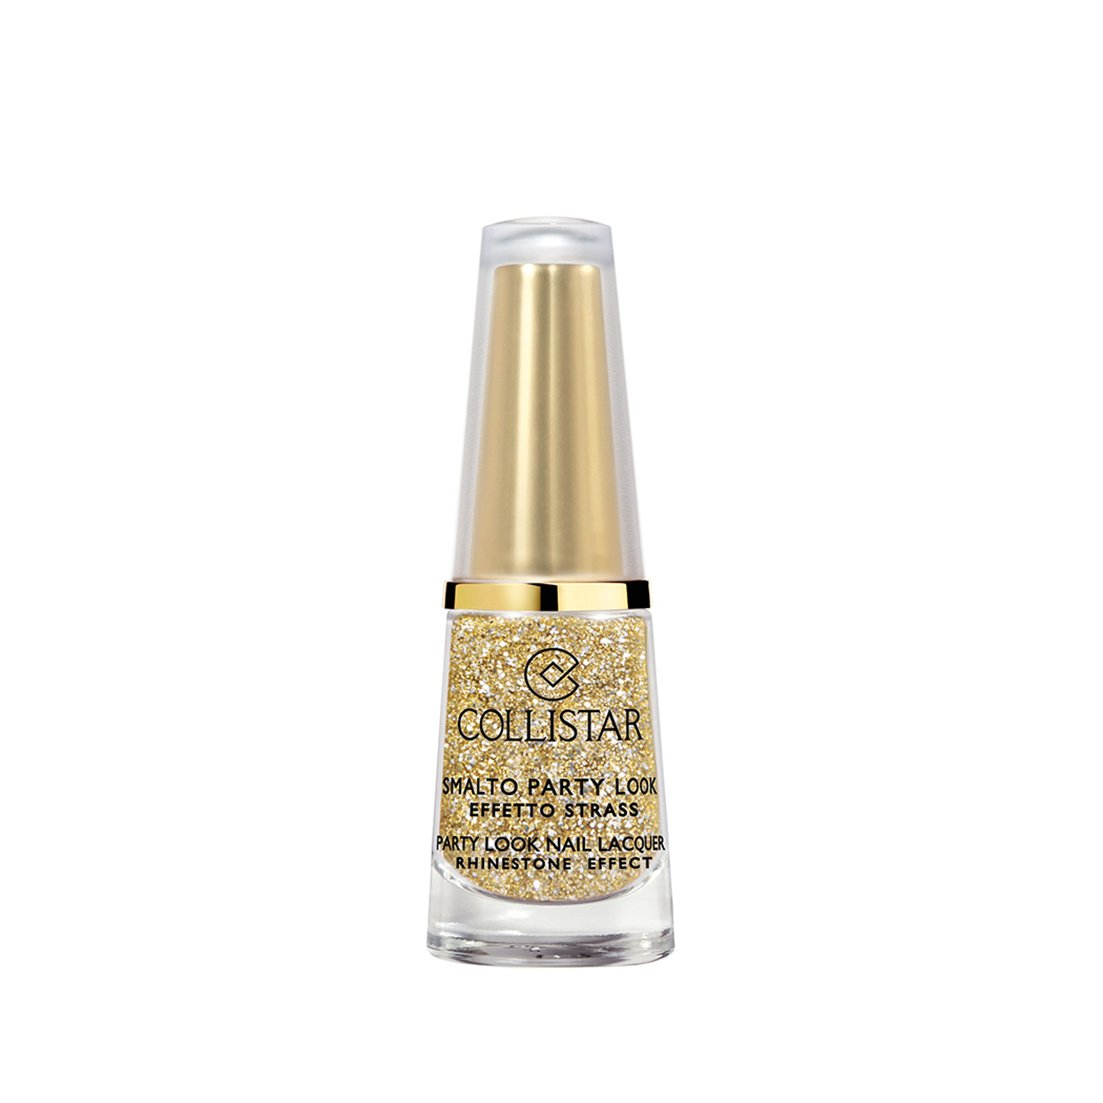 Collistar-Party look nail lacquer 618 1105